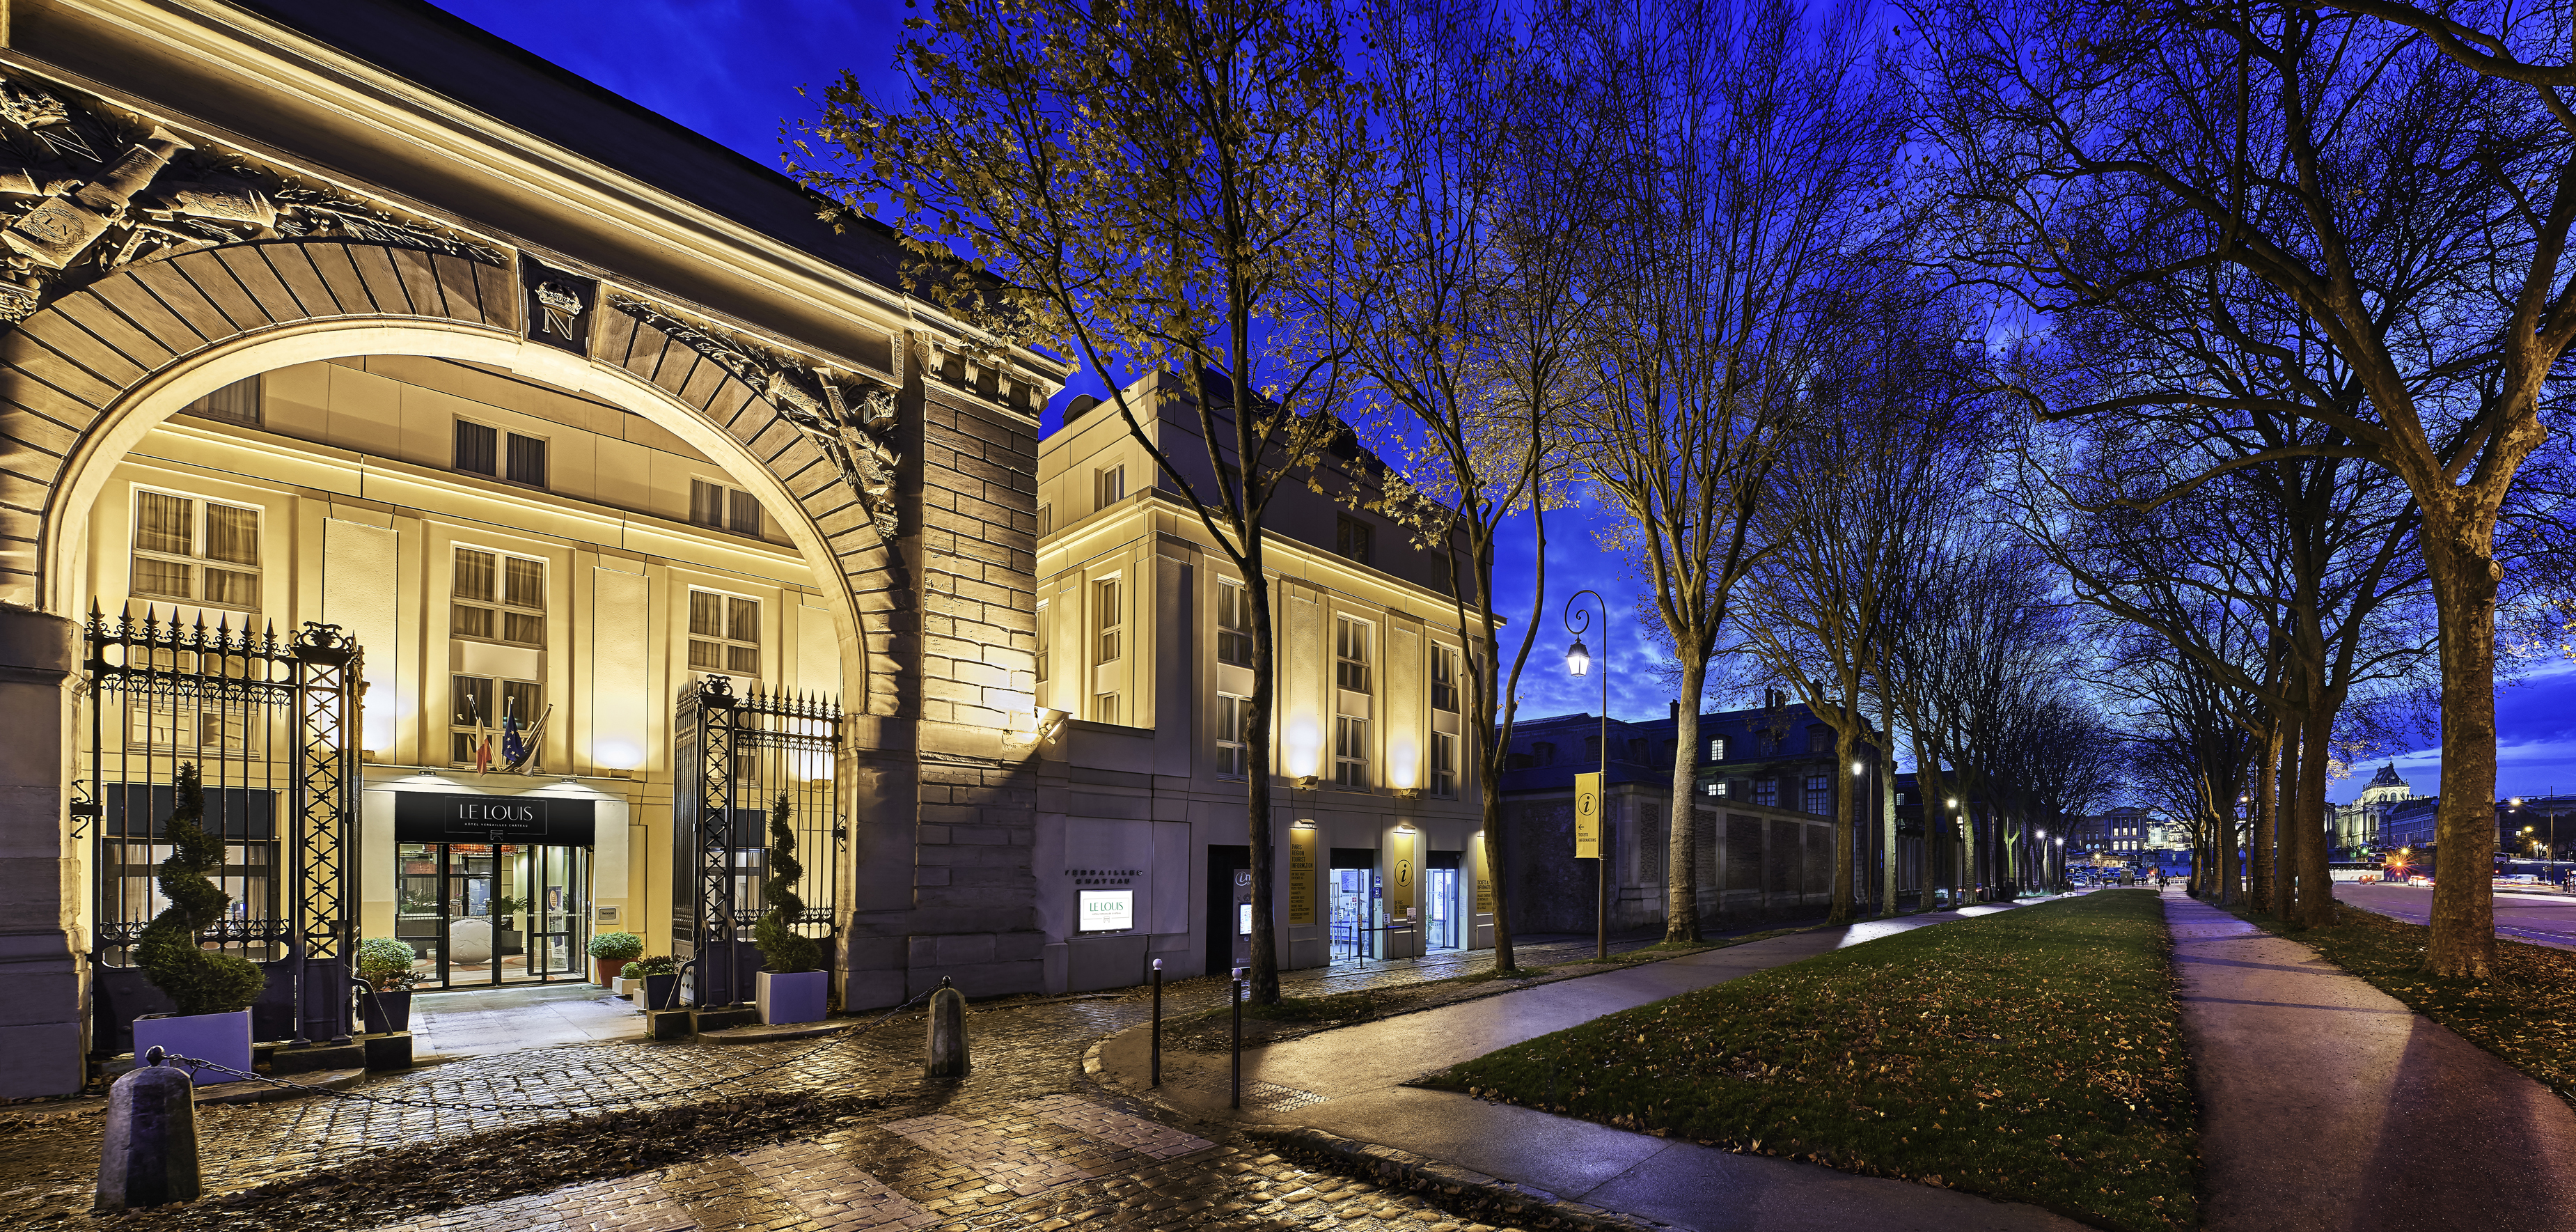 Le Louis Versailles Chateau - MGallery, Yvelines